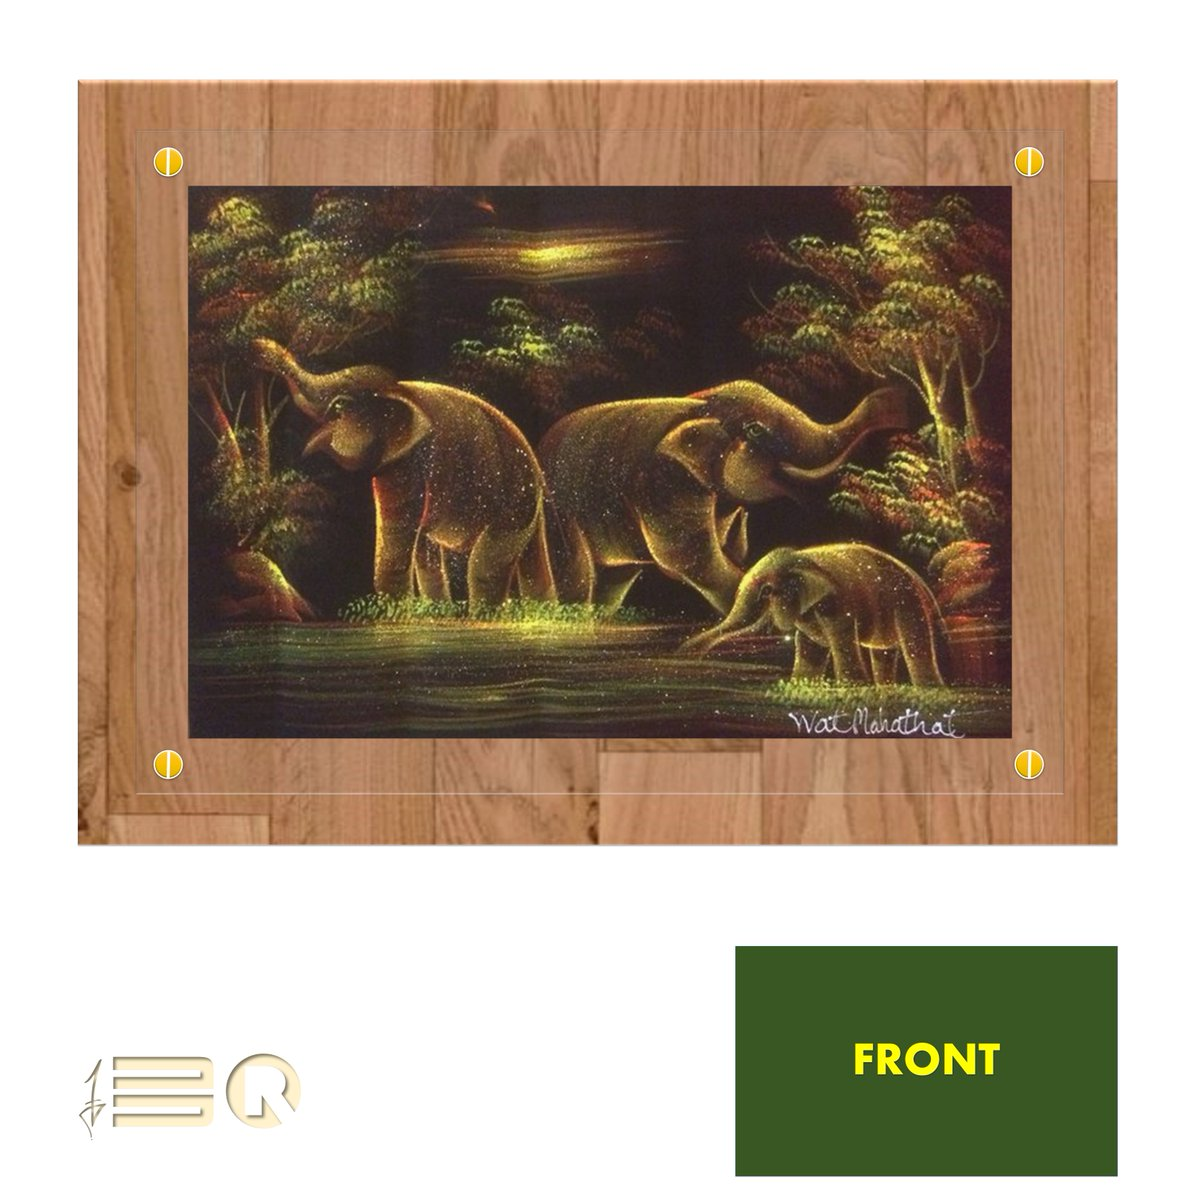 Art of Framing... Concept(s) Done, Order Placed With the Carpenter... Due Delivery = Next Week  #THAIelephants#ThrivingThursdaypic.twitter.com/WQjZnpv6Af